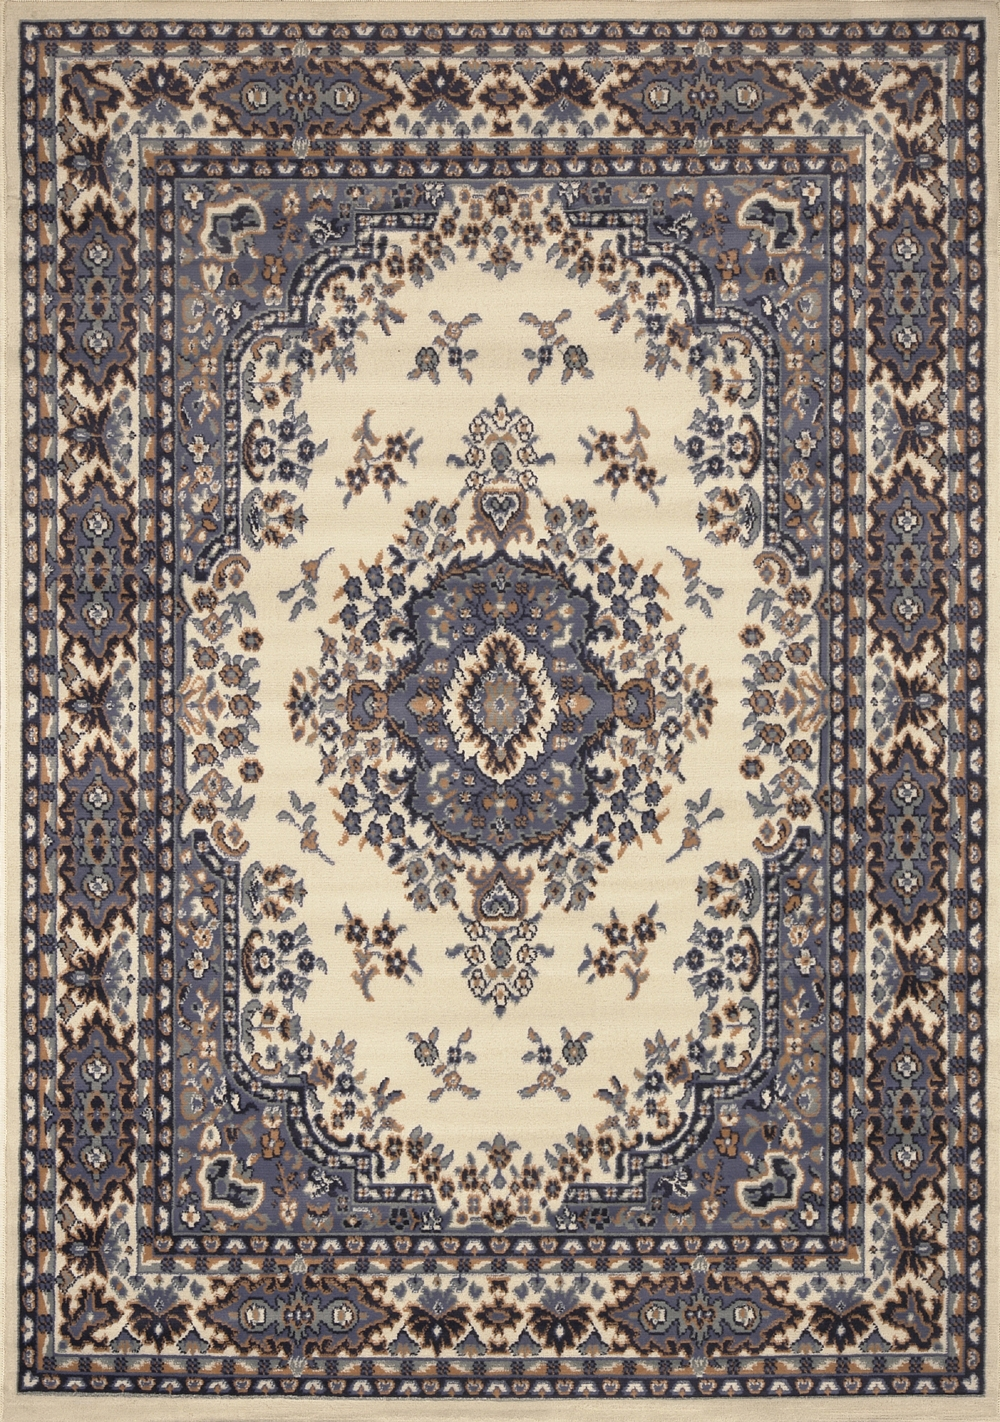 Large Traditional 8×11 Oriental Area Rug Persian Style Carpet Intended For Persian Style Wool Rugs (Image 8 of 15)